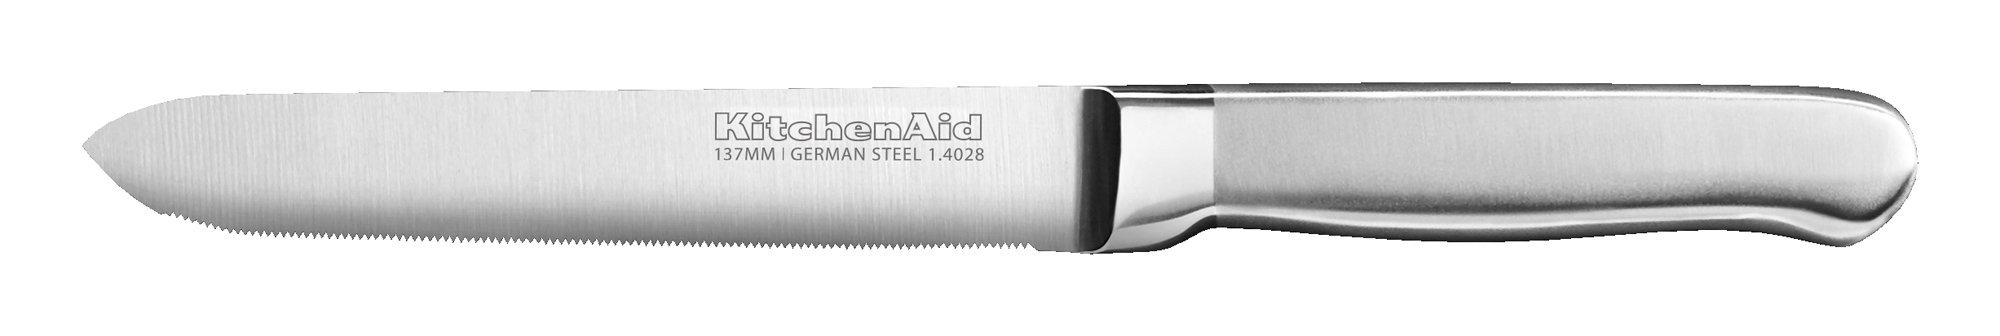 KitchenAid KKFSS5SUST Classic Forged Series Brushed Serrated Utility Knife, Stainless Steel, 5.5'' by KitchenAid